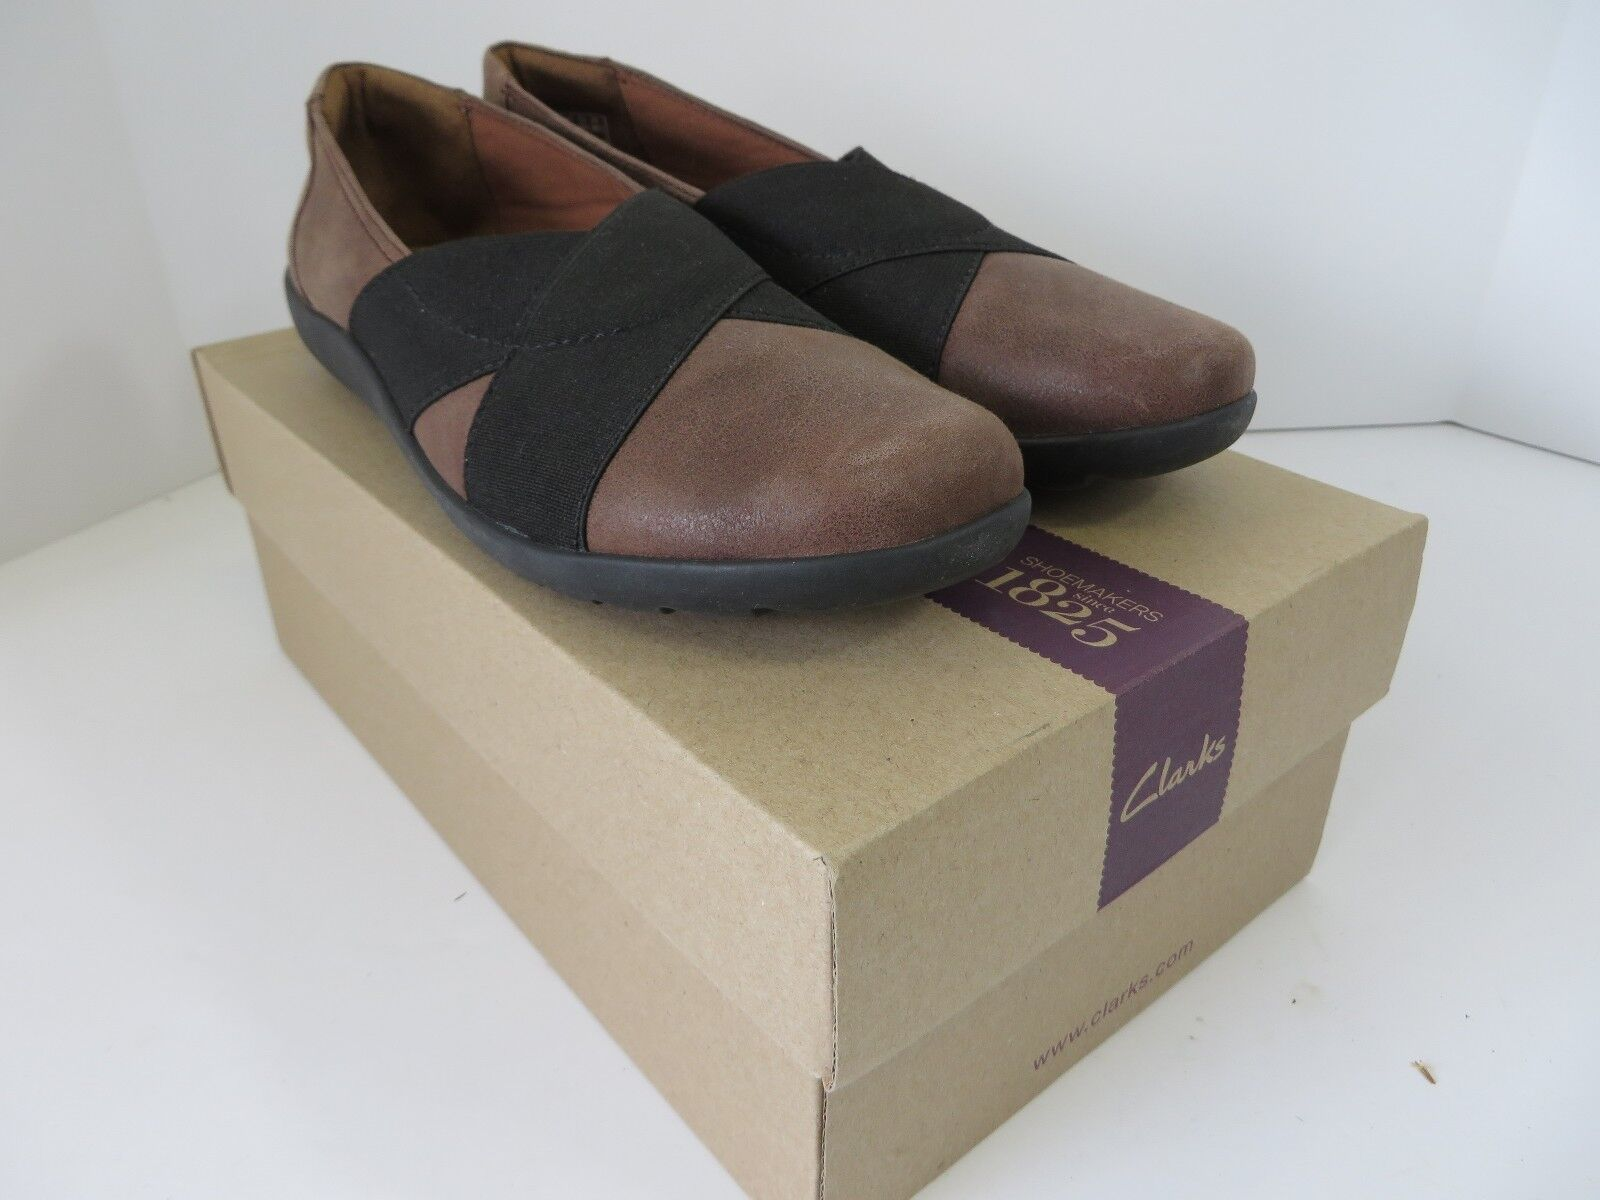 Clarks Medora Jem Cross Strap chaussures Leather Textile marron 8.5 M New in Box  B565